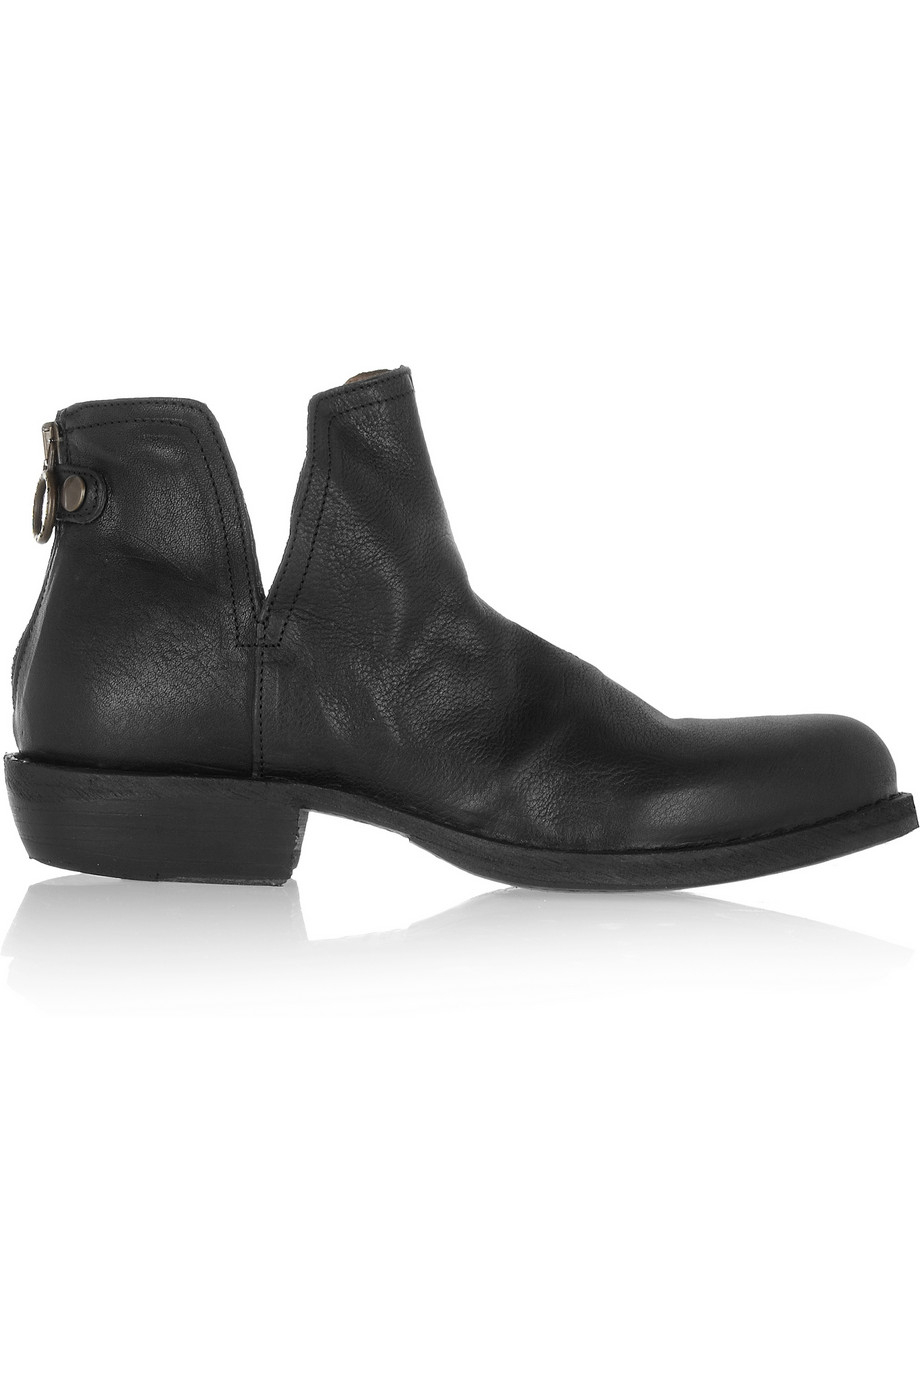 Fiorentini Baker Camy Carnaby Leather Ankle Boots In